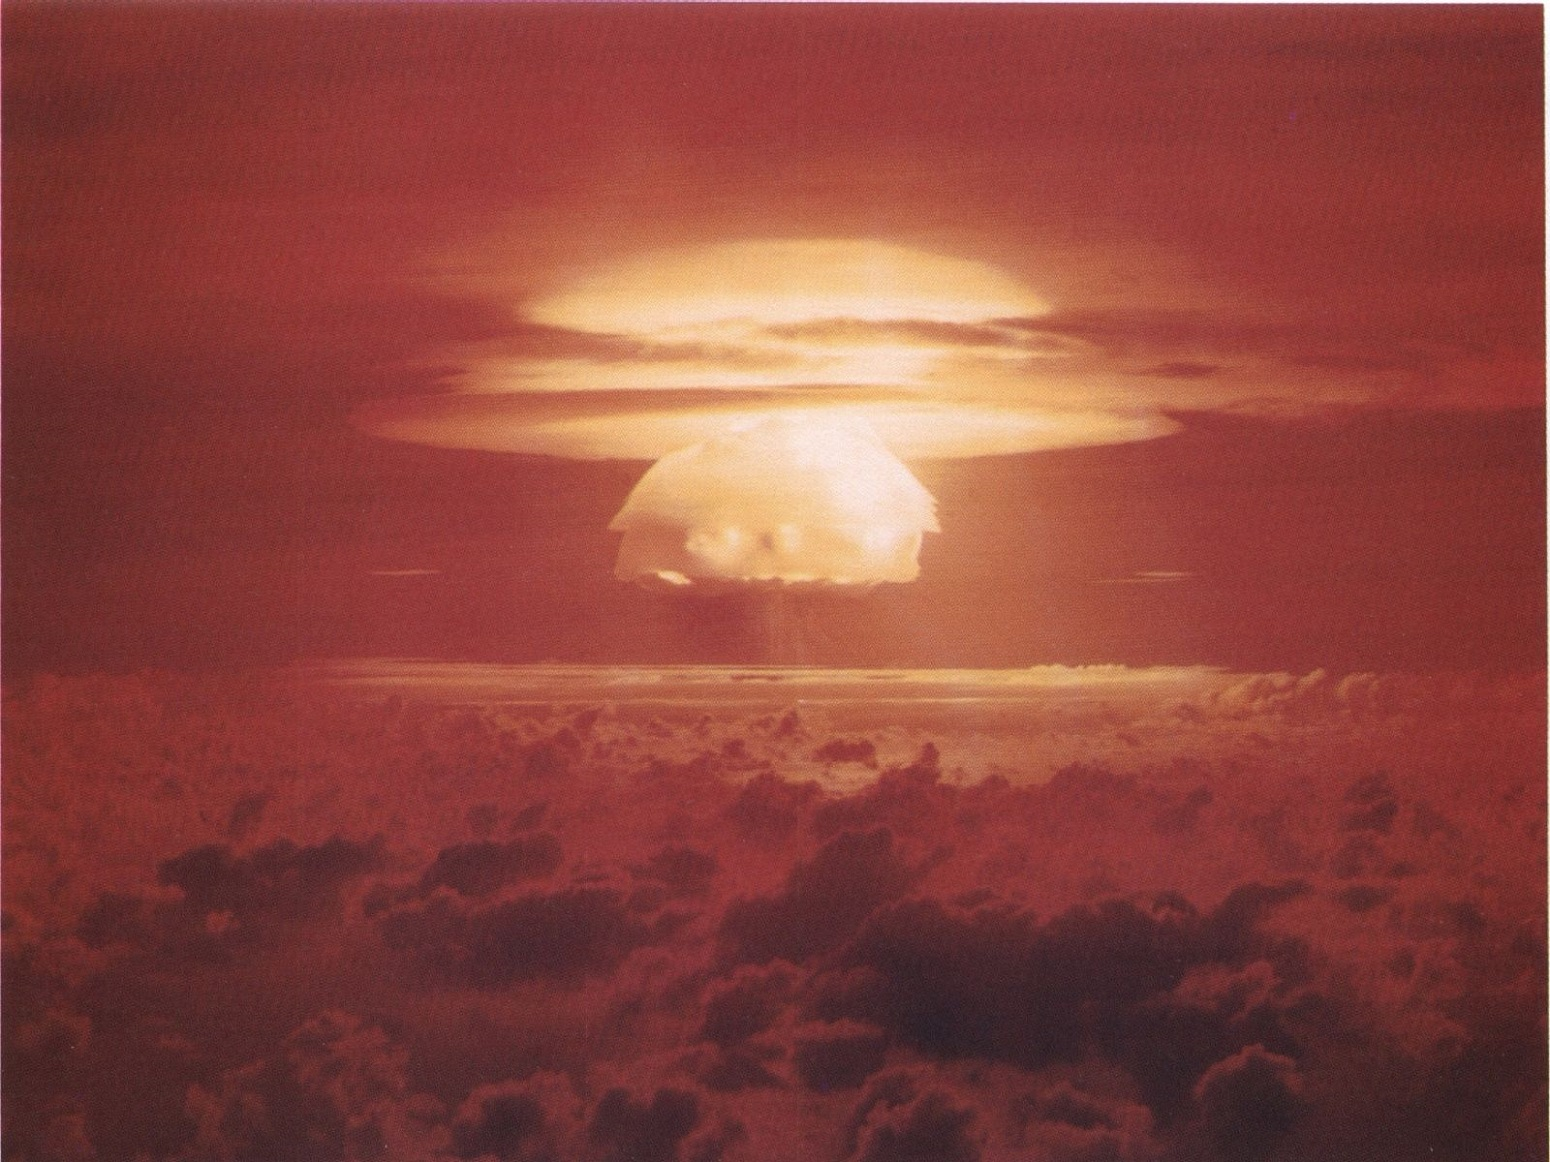 There Is No Such Thing As a 'Small' Nuclear War (But Trump Wants Mini